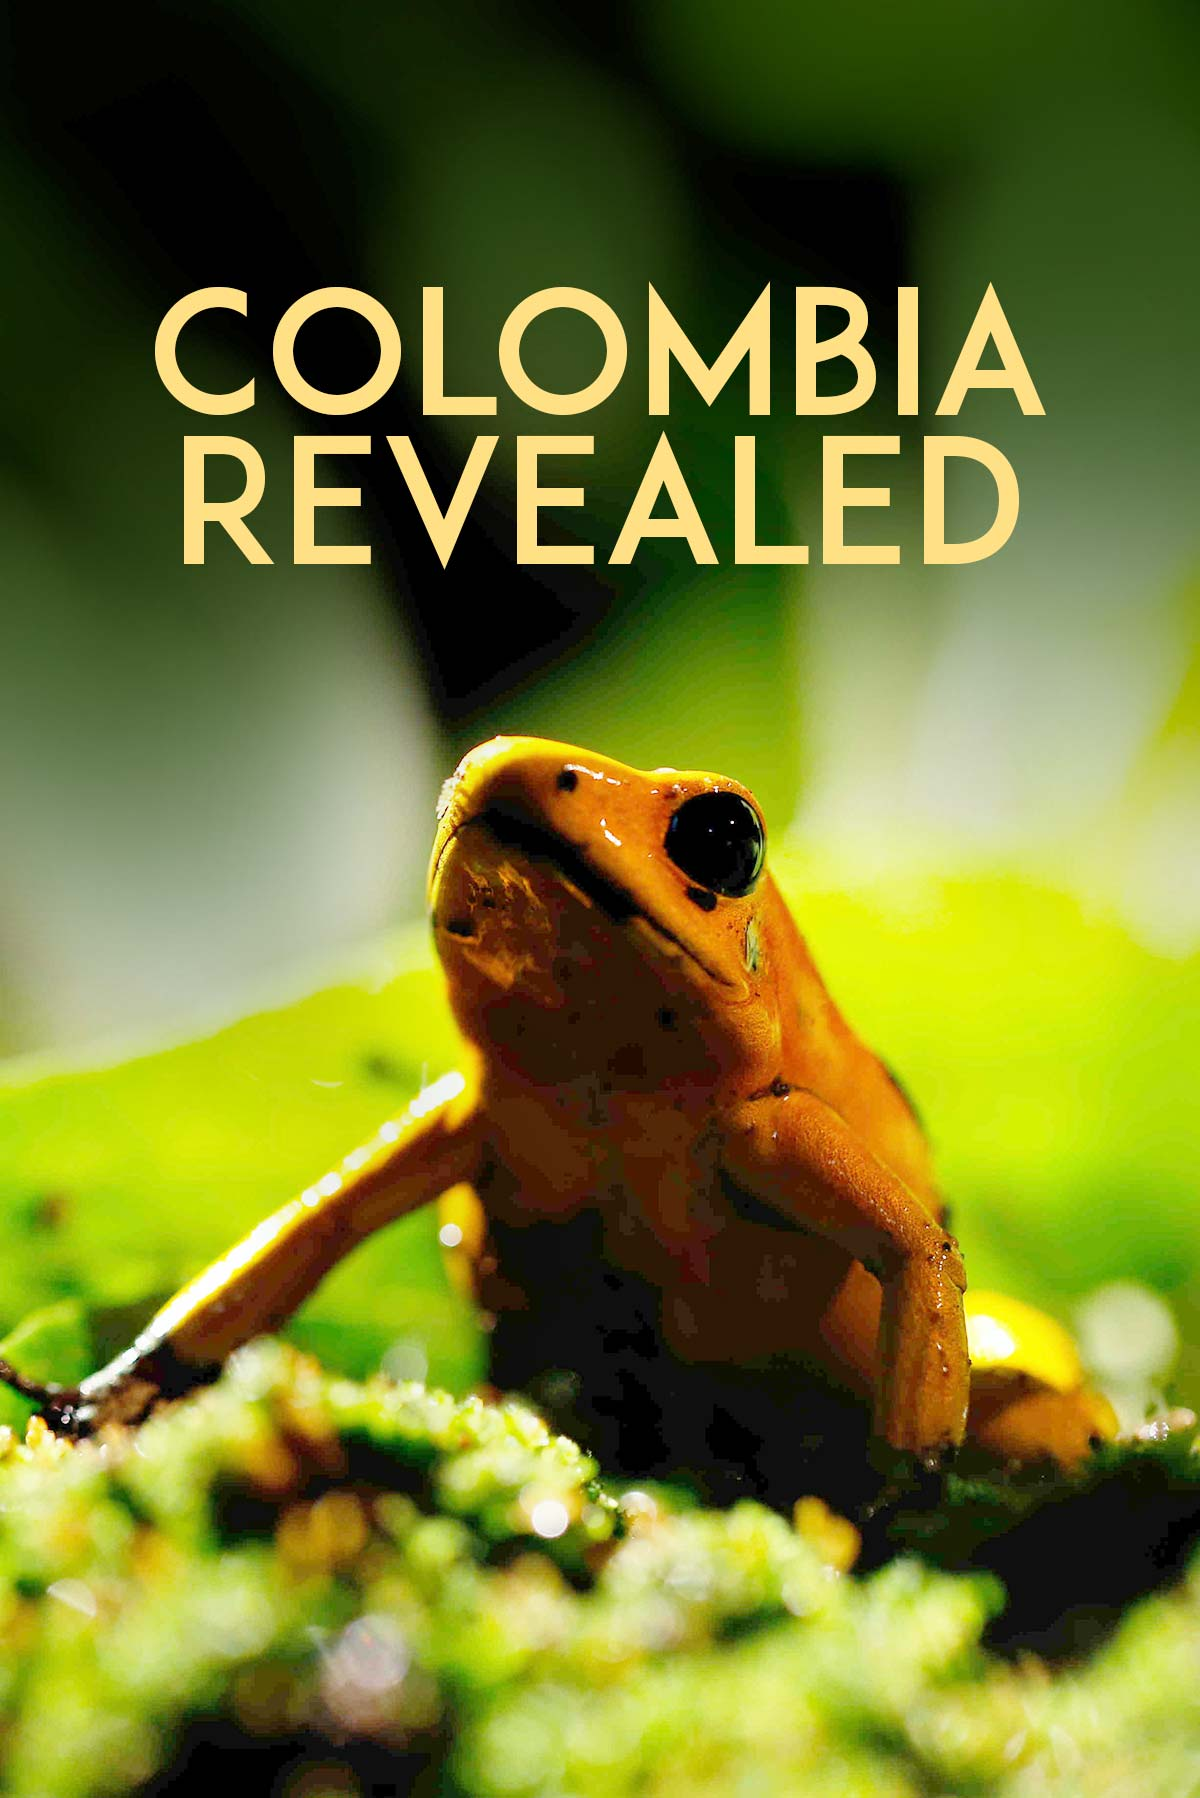 Colombia Revealed